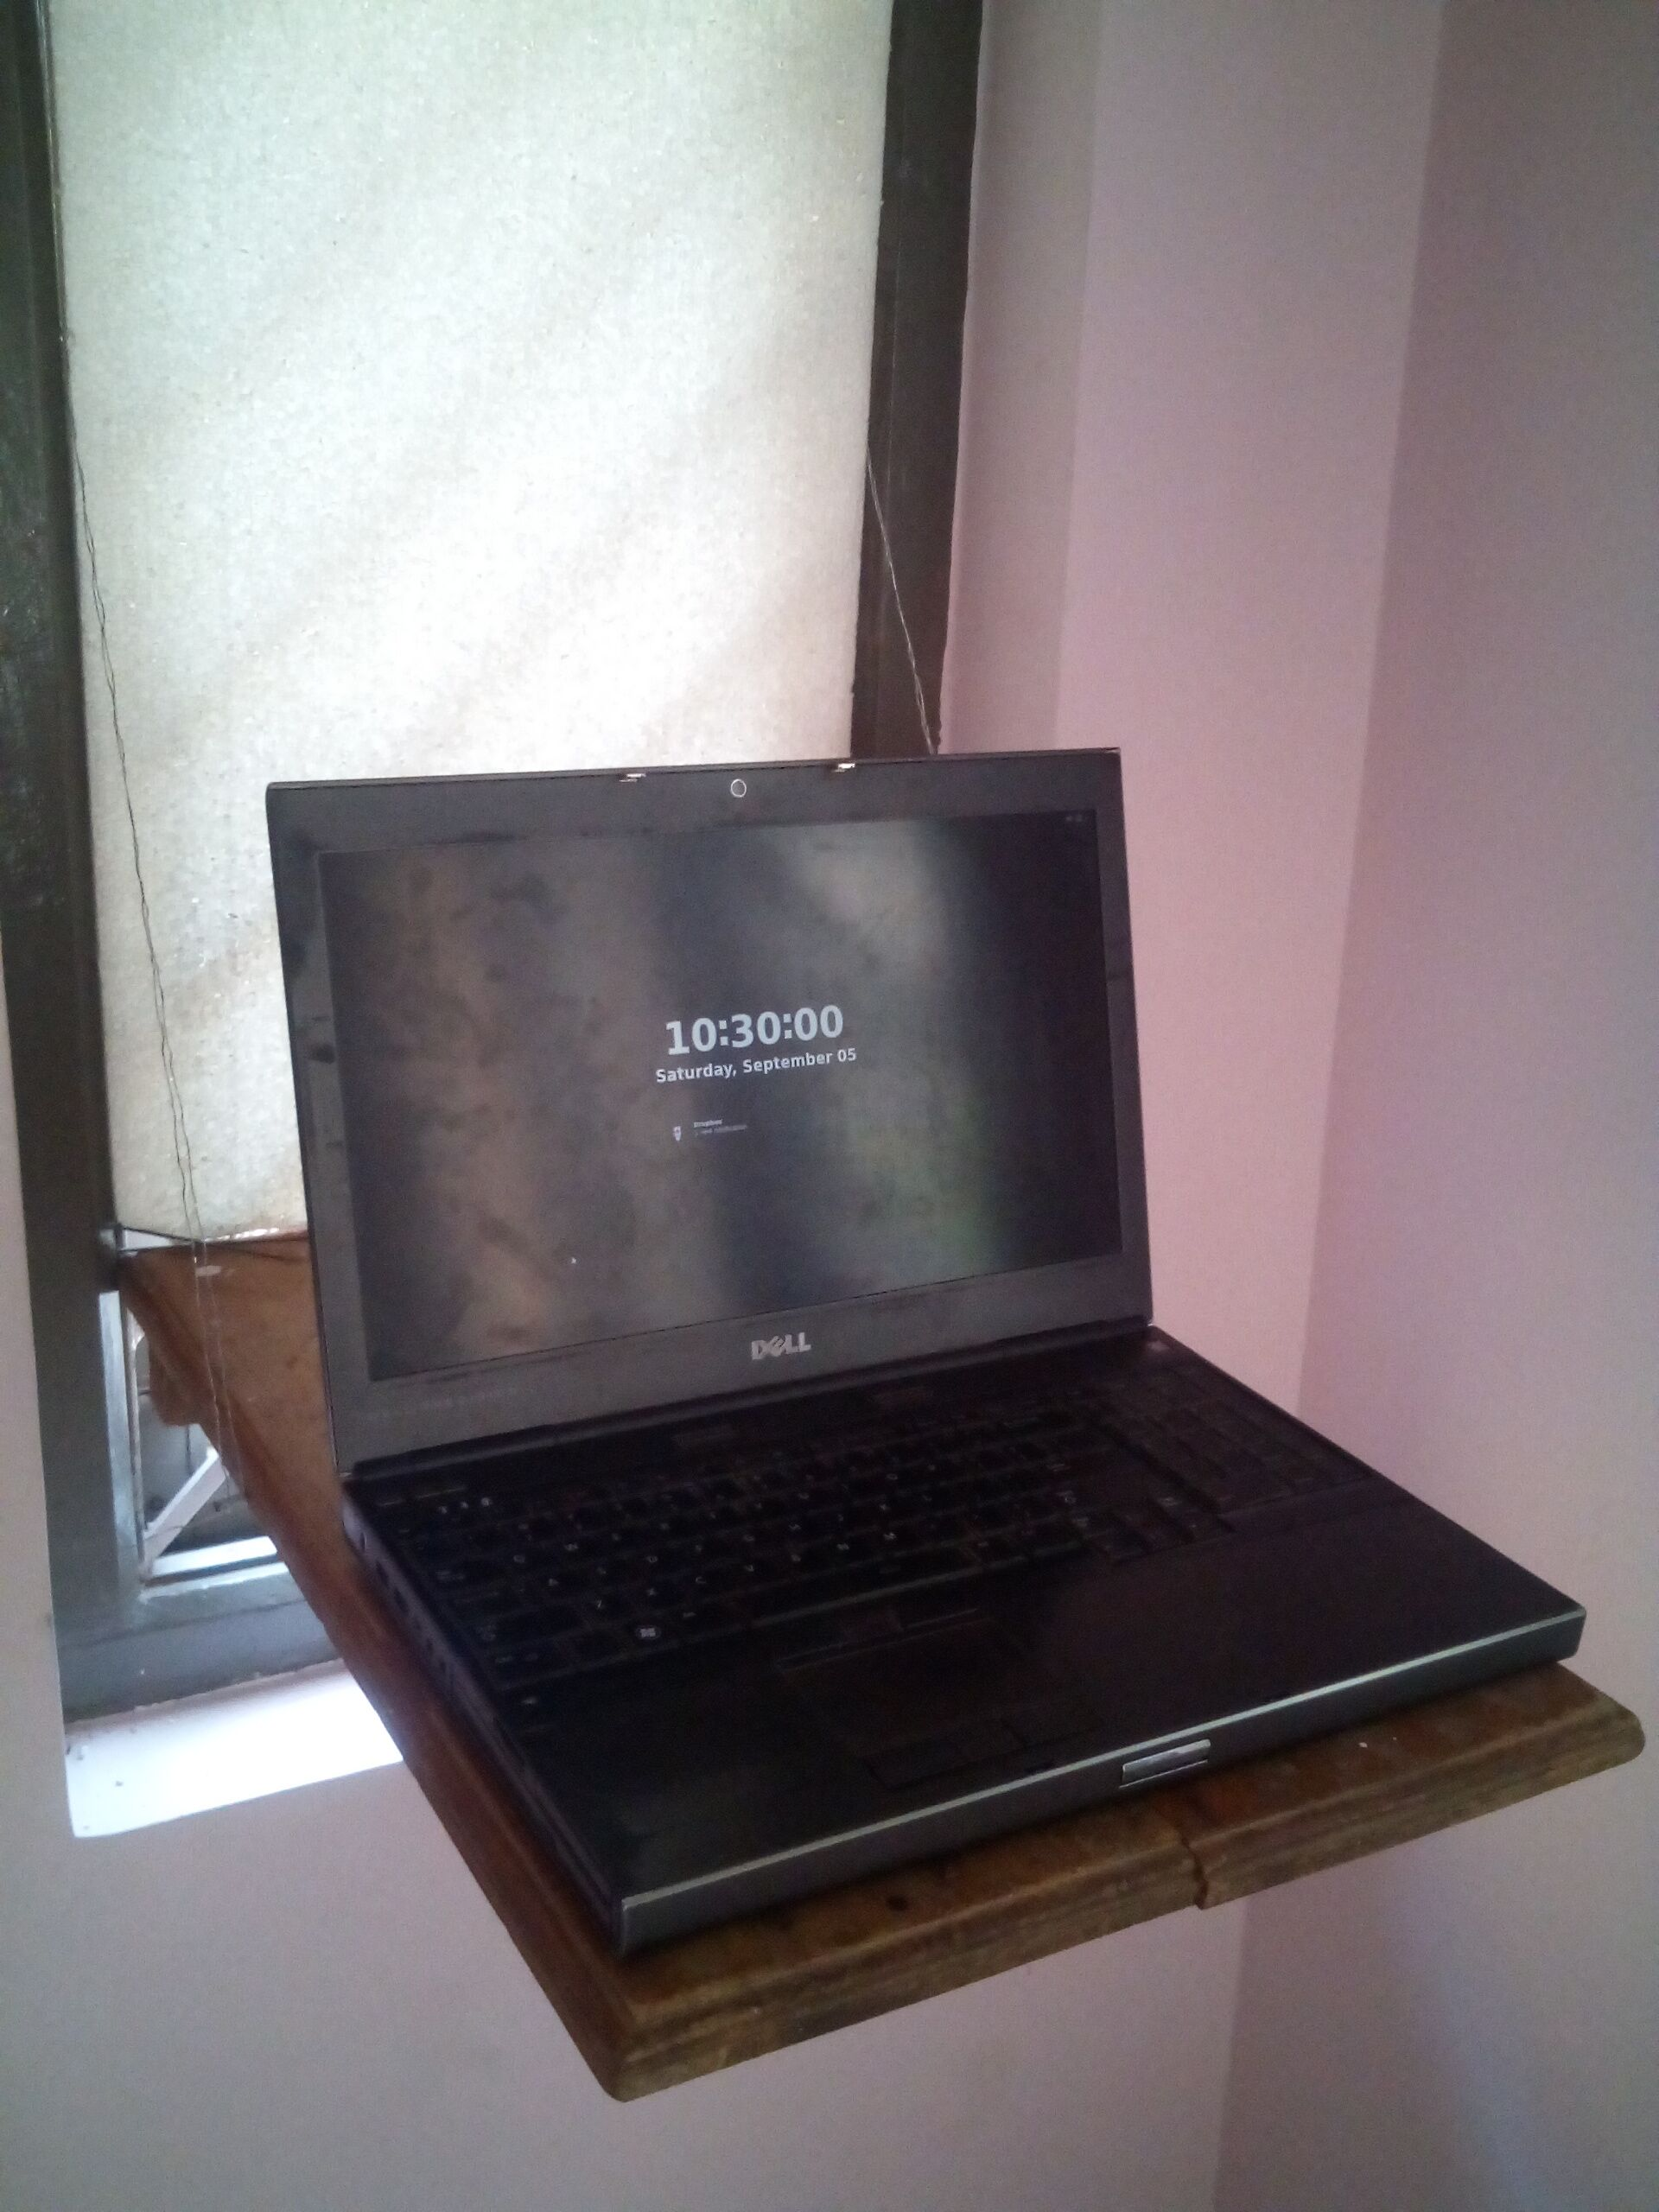 standing-desk-old-laptop.jpeg